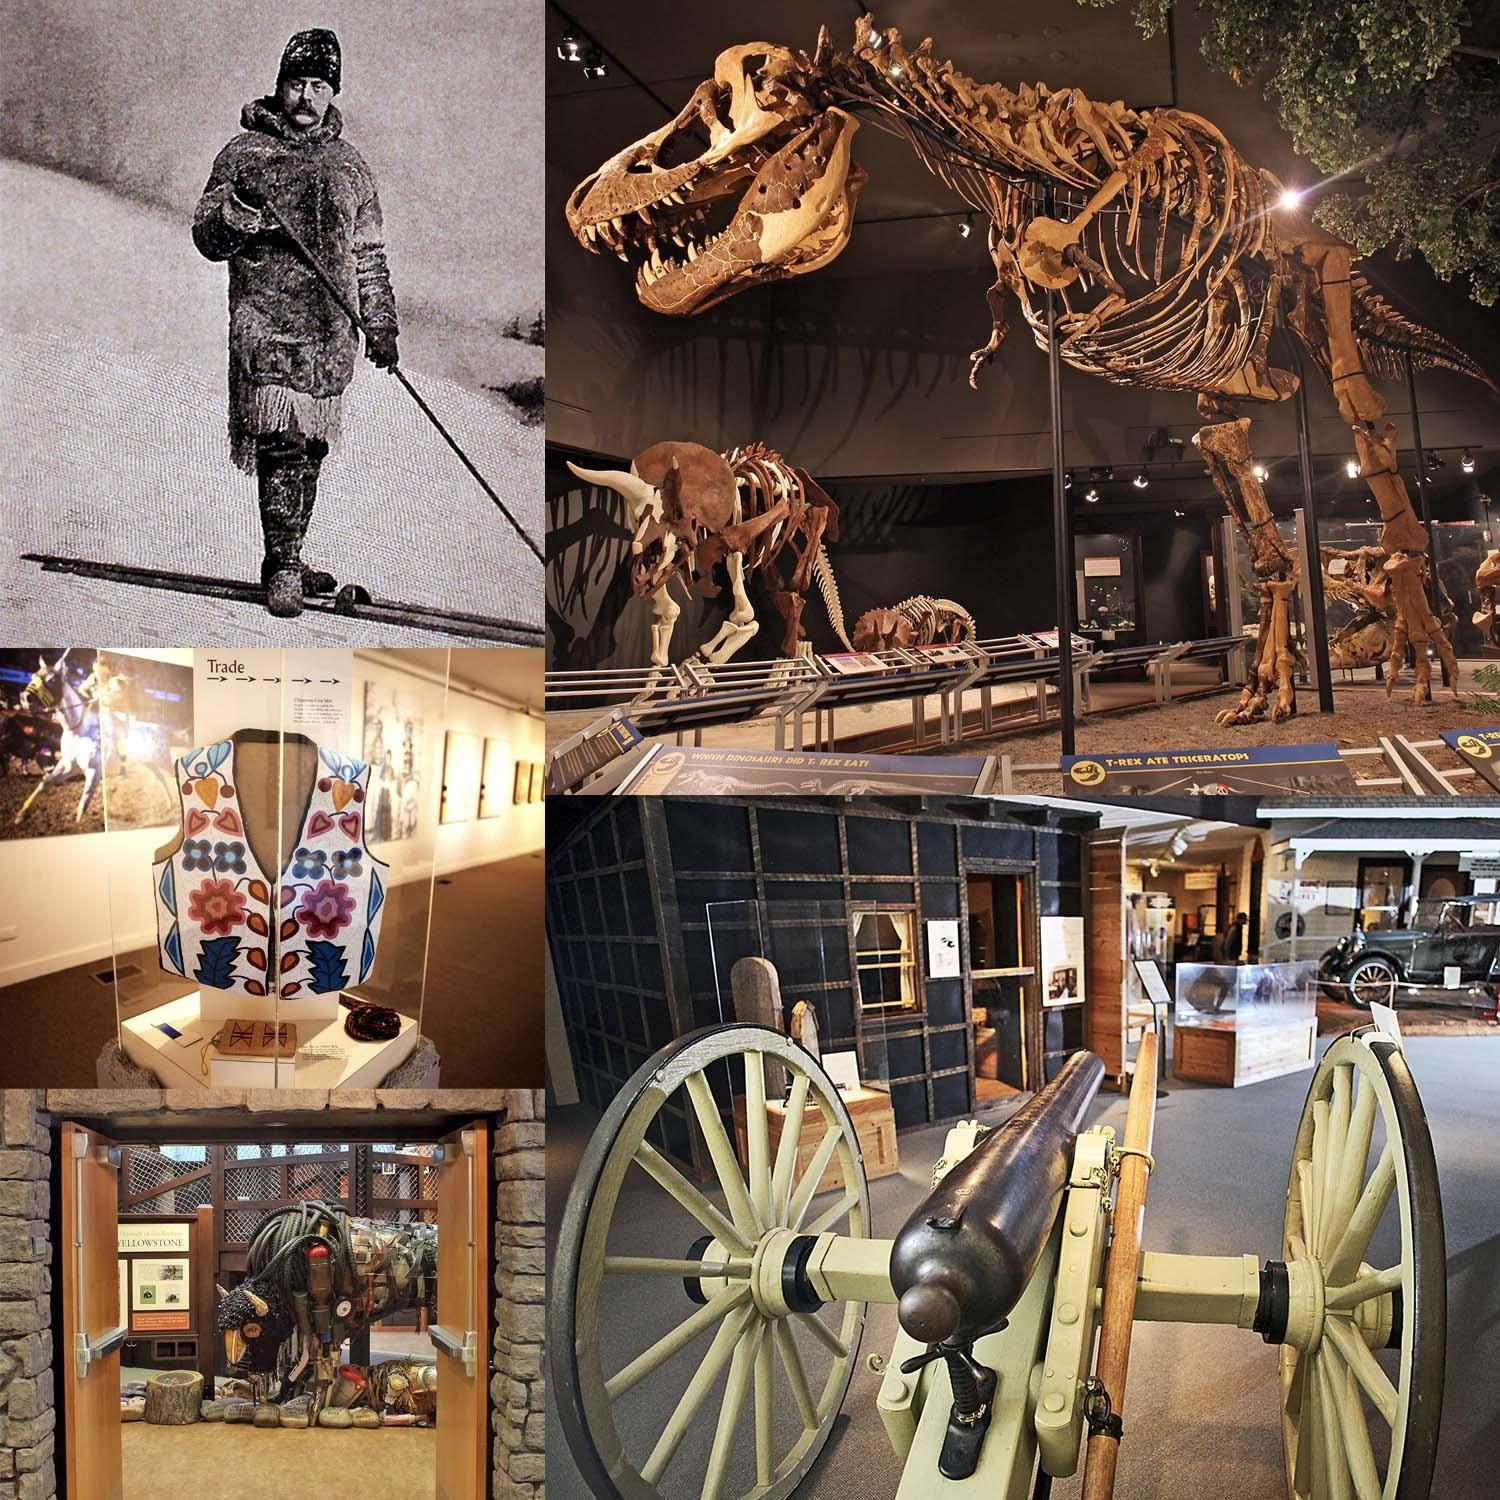 Collage of Montana's T.rex, Bain wagon, American Indian beaded vest, Explore Yellowstone entrance and a historical photo of a hunter in the winter.